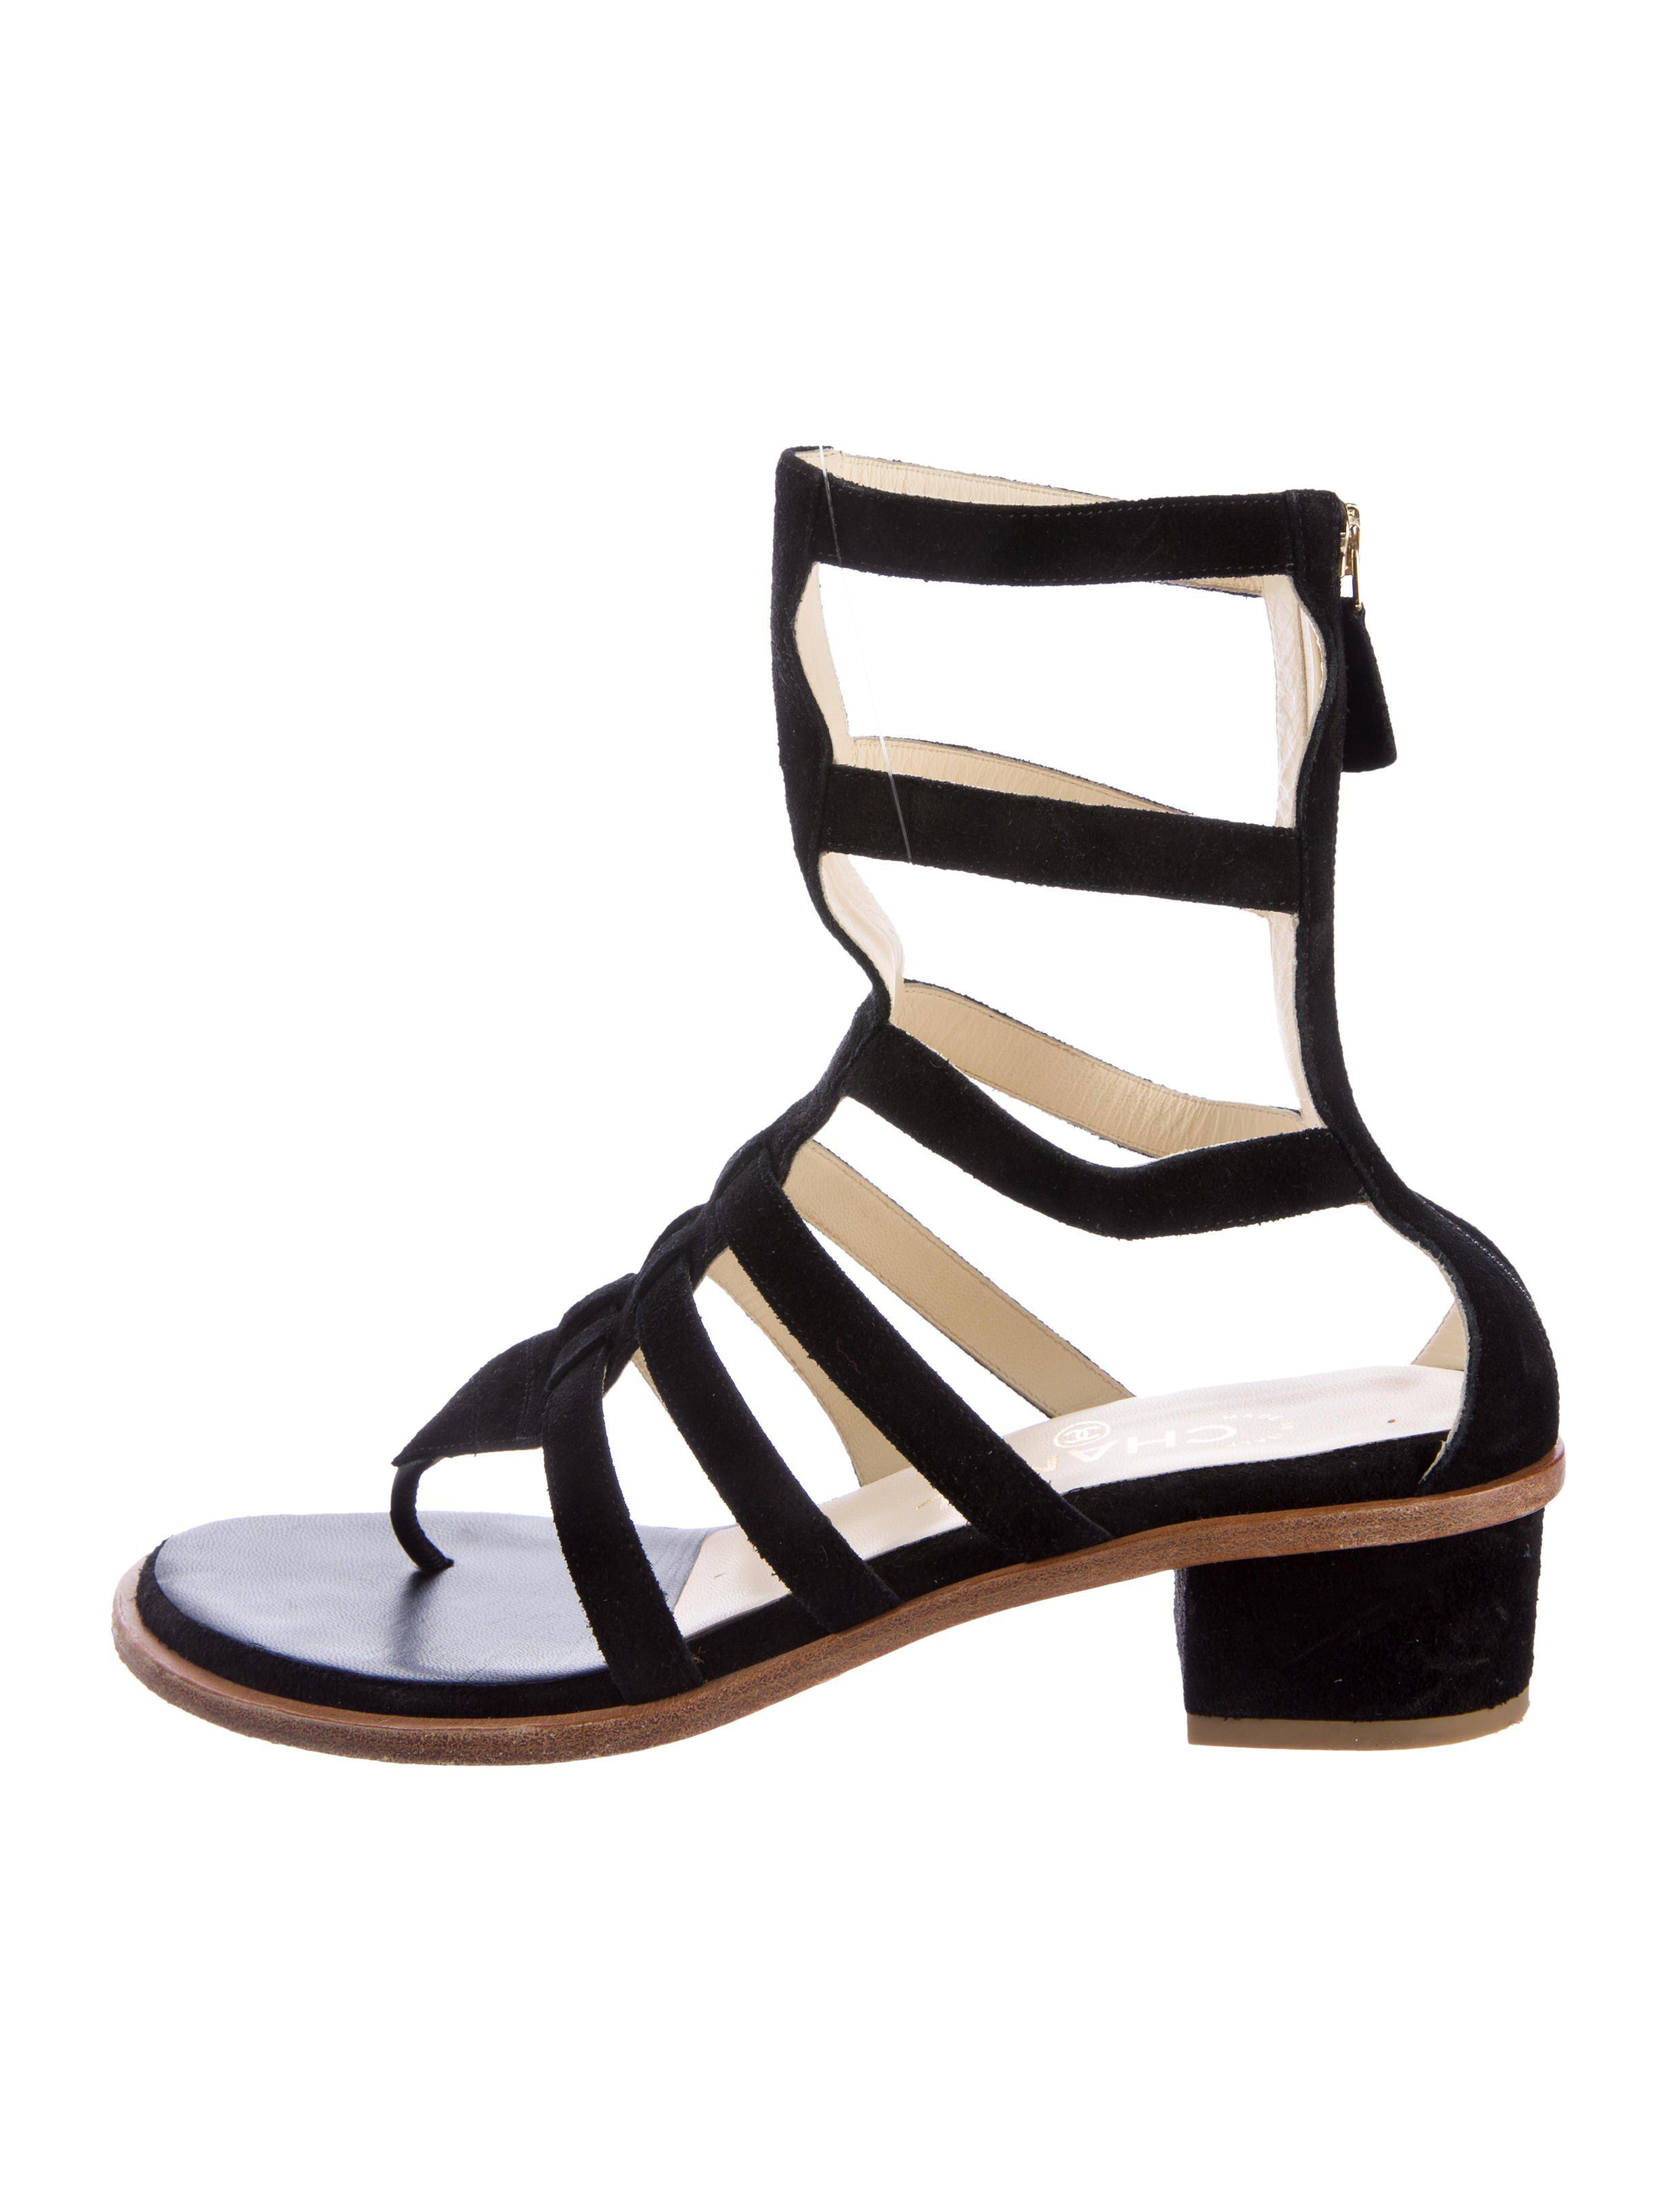 73734009bd37 Lyst chanel suede gladiator sandals in black jpg 2466x3253 Chanel gladiator  sandals